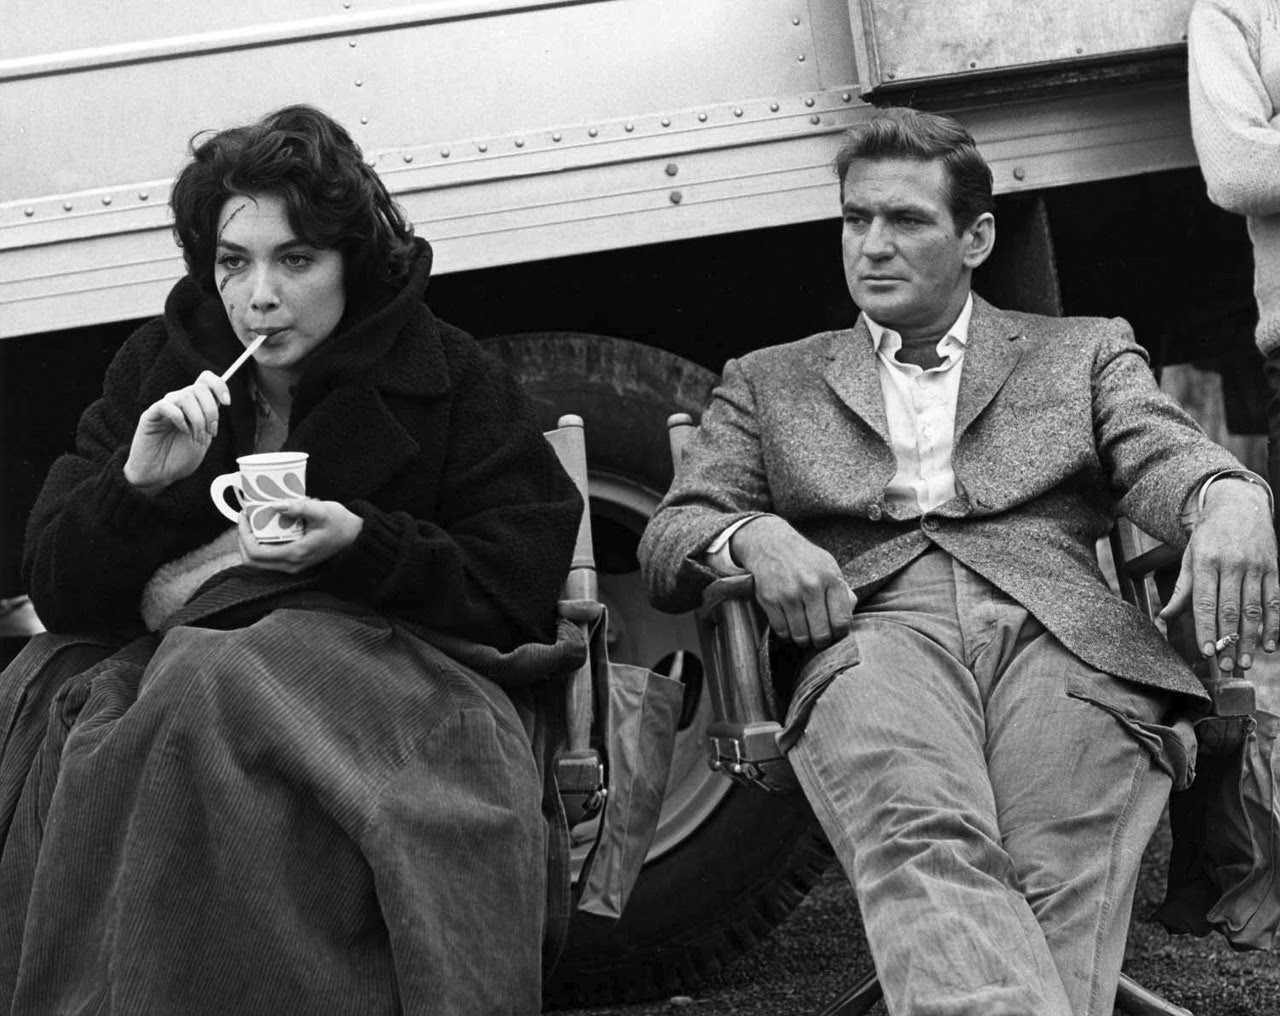 Trim Cargo Pants For Those Rough Days At The Office.Rod Taylor, with Suzanne Pleshette, 1962.